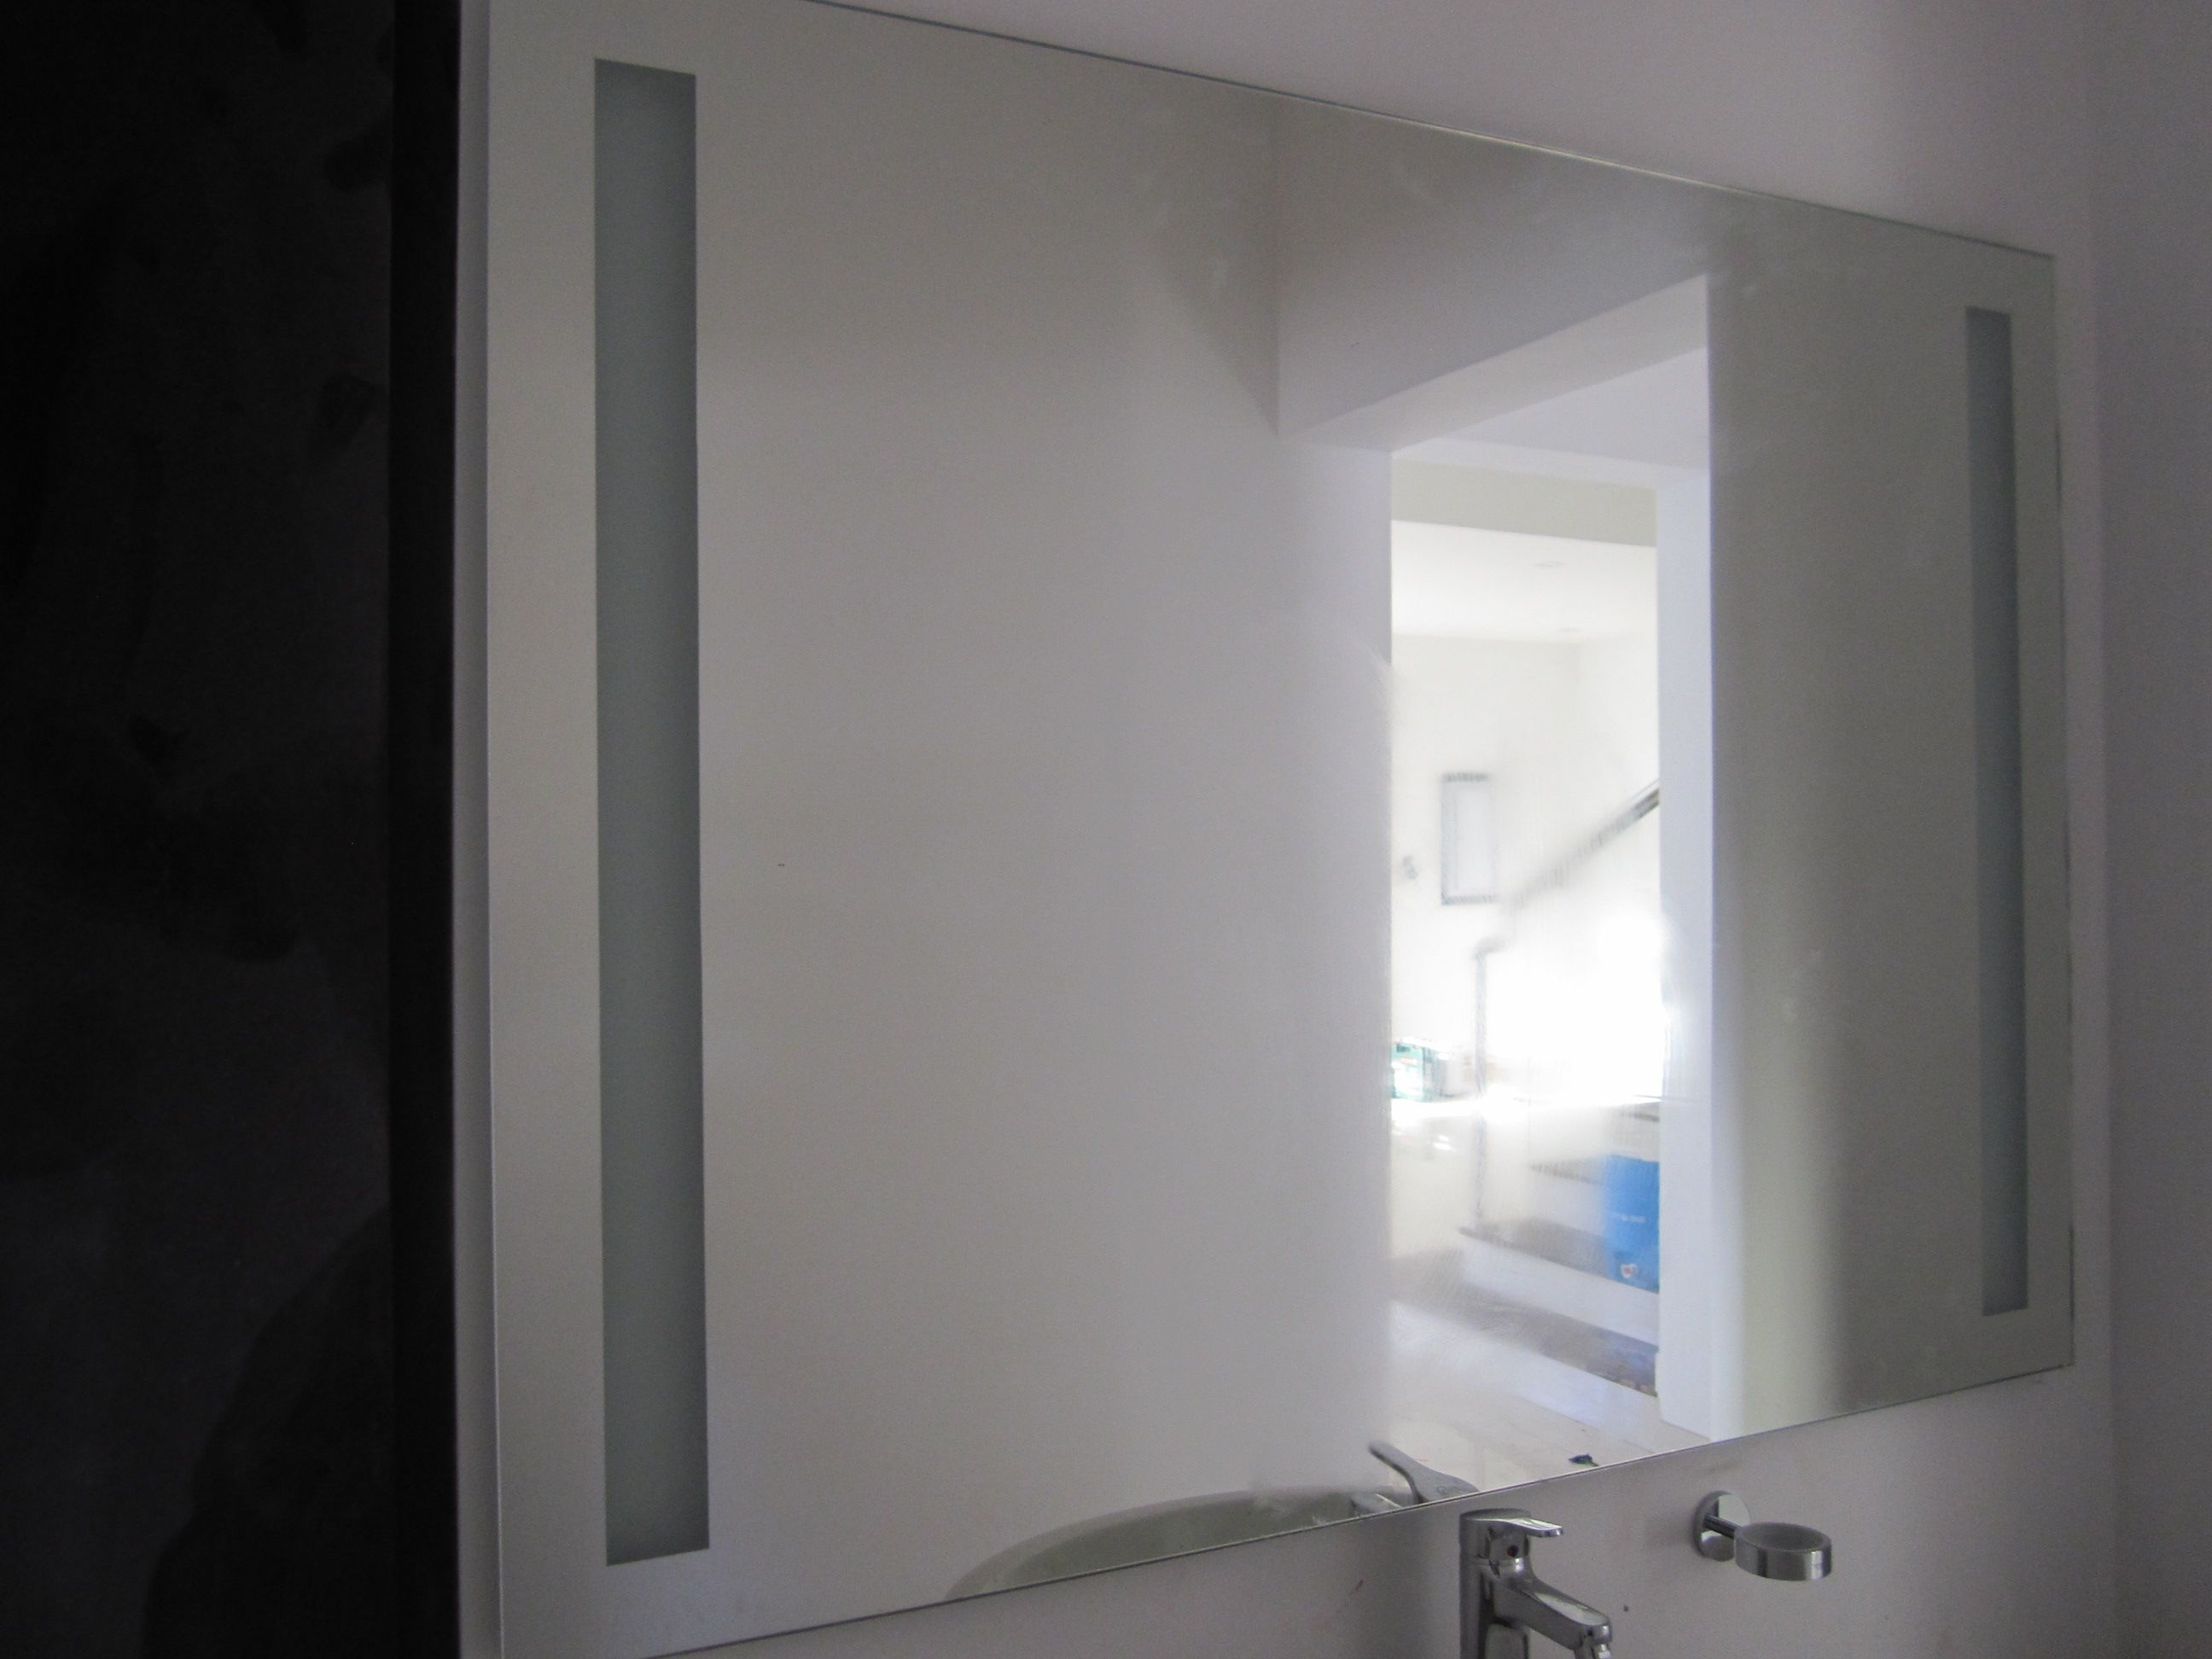 Bagno Design Bahrain Wll Mirror With Sandblast Line Design Glasechnik Bahrain Mirror